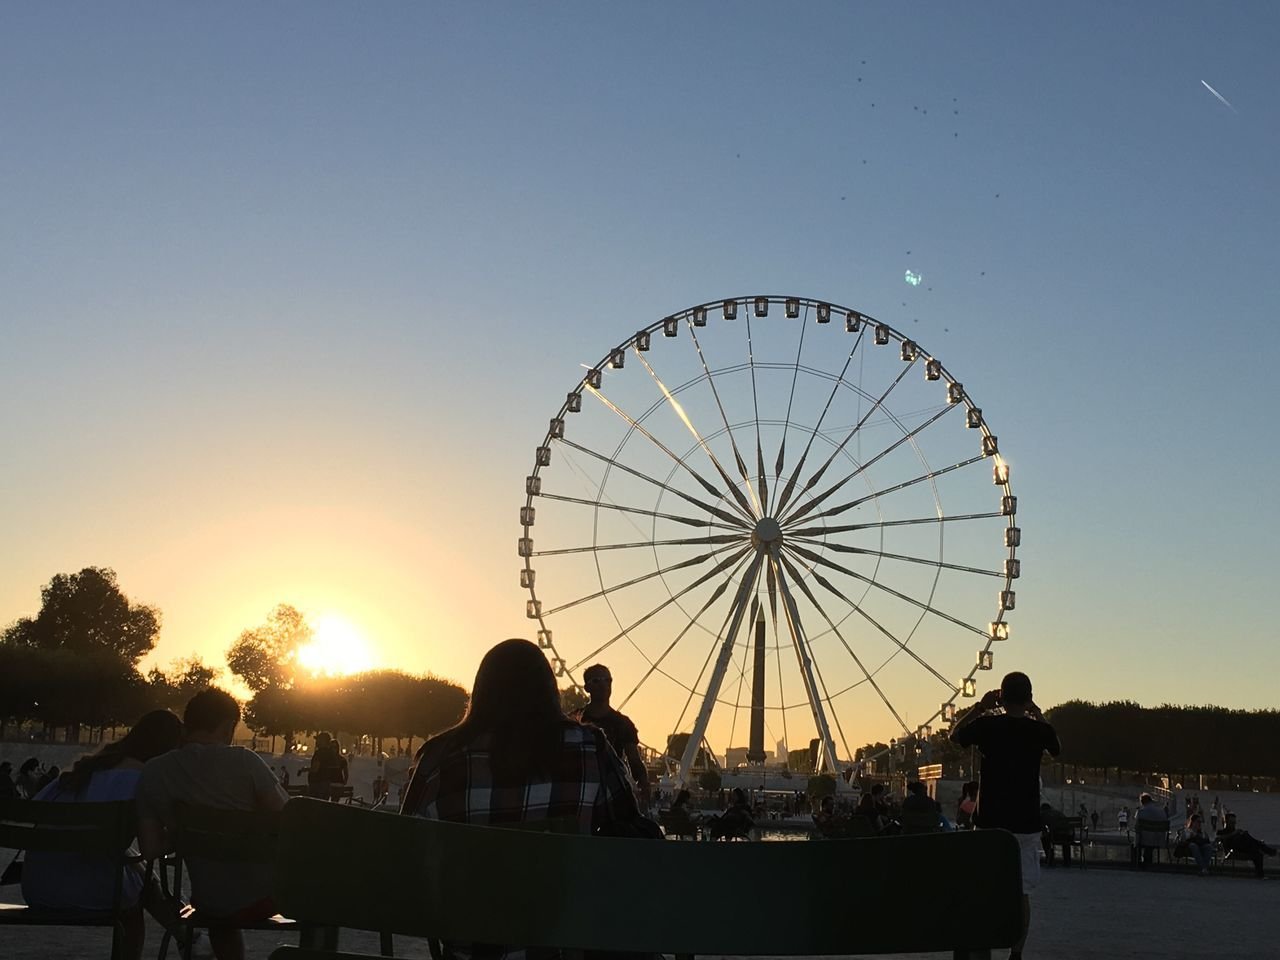 Sunny afternoons at the Tuileries 😌🎡🌅 My Year My View Lazy Afternoon Sunset Tuileries Park Ferris Wheel Sunbathing Enjoying Life Enjoying The Sun Sky Sun People Summer Paris Taking Photos Young Adult Blue Colorful EyeEm Best Shots Eye4photography  EyeEm Gallery Outdoors Relaxing Keep Traveling